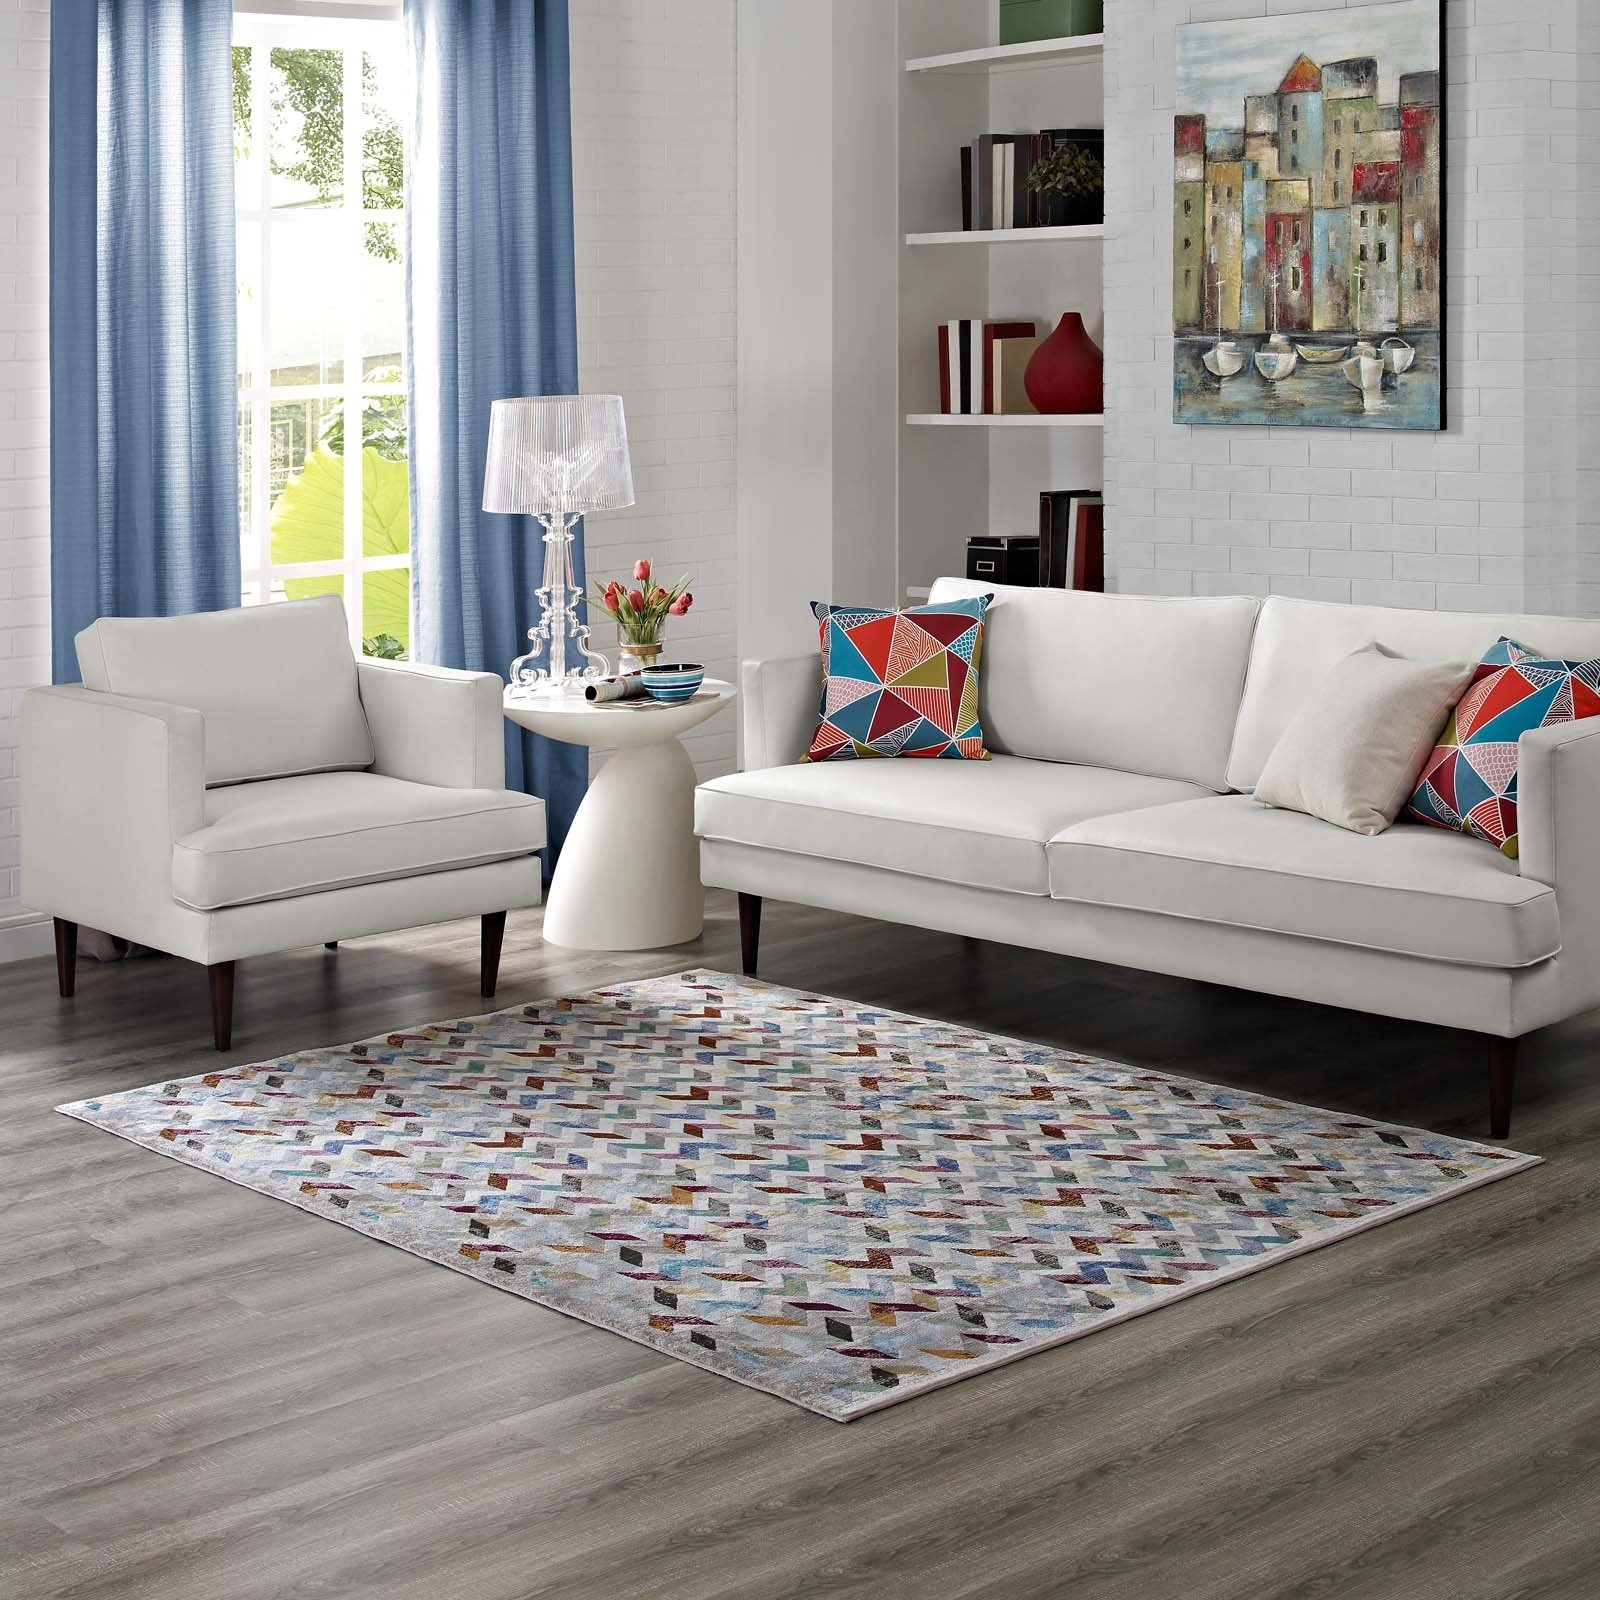 Gemma Chevron Mosaic 8x10 Area Rug in Multicolored Product Image